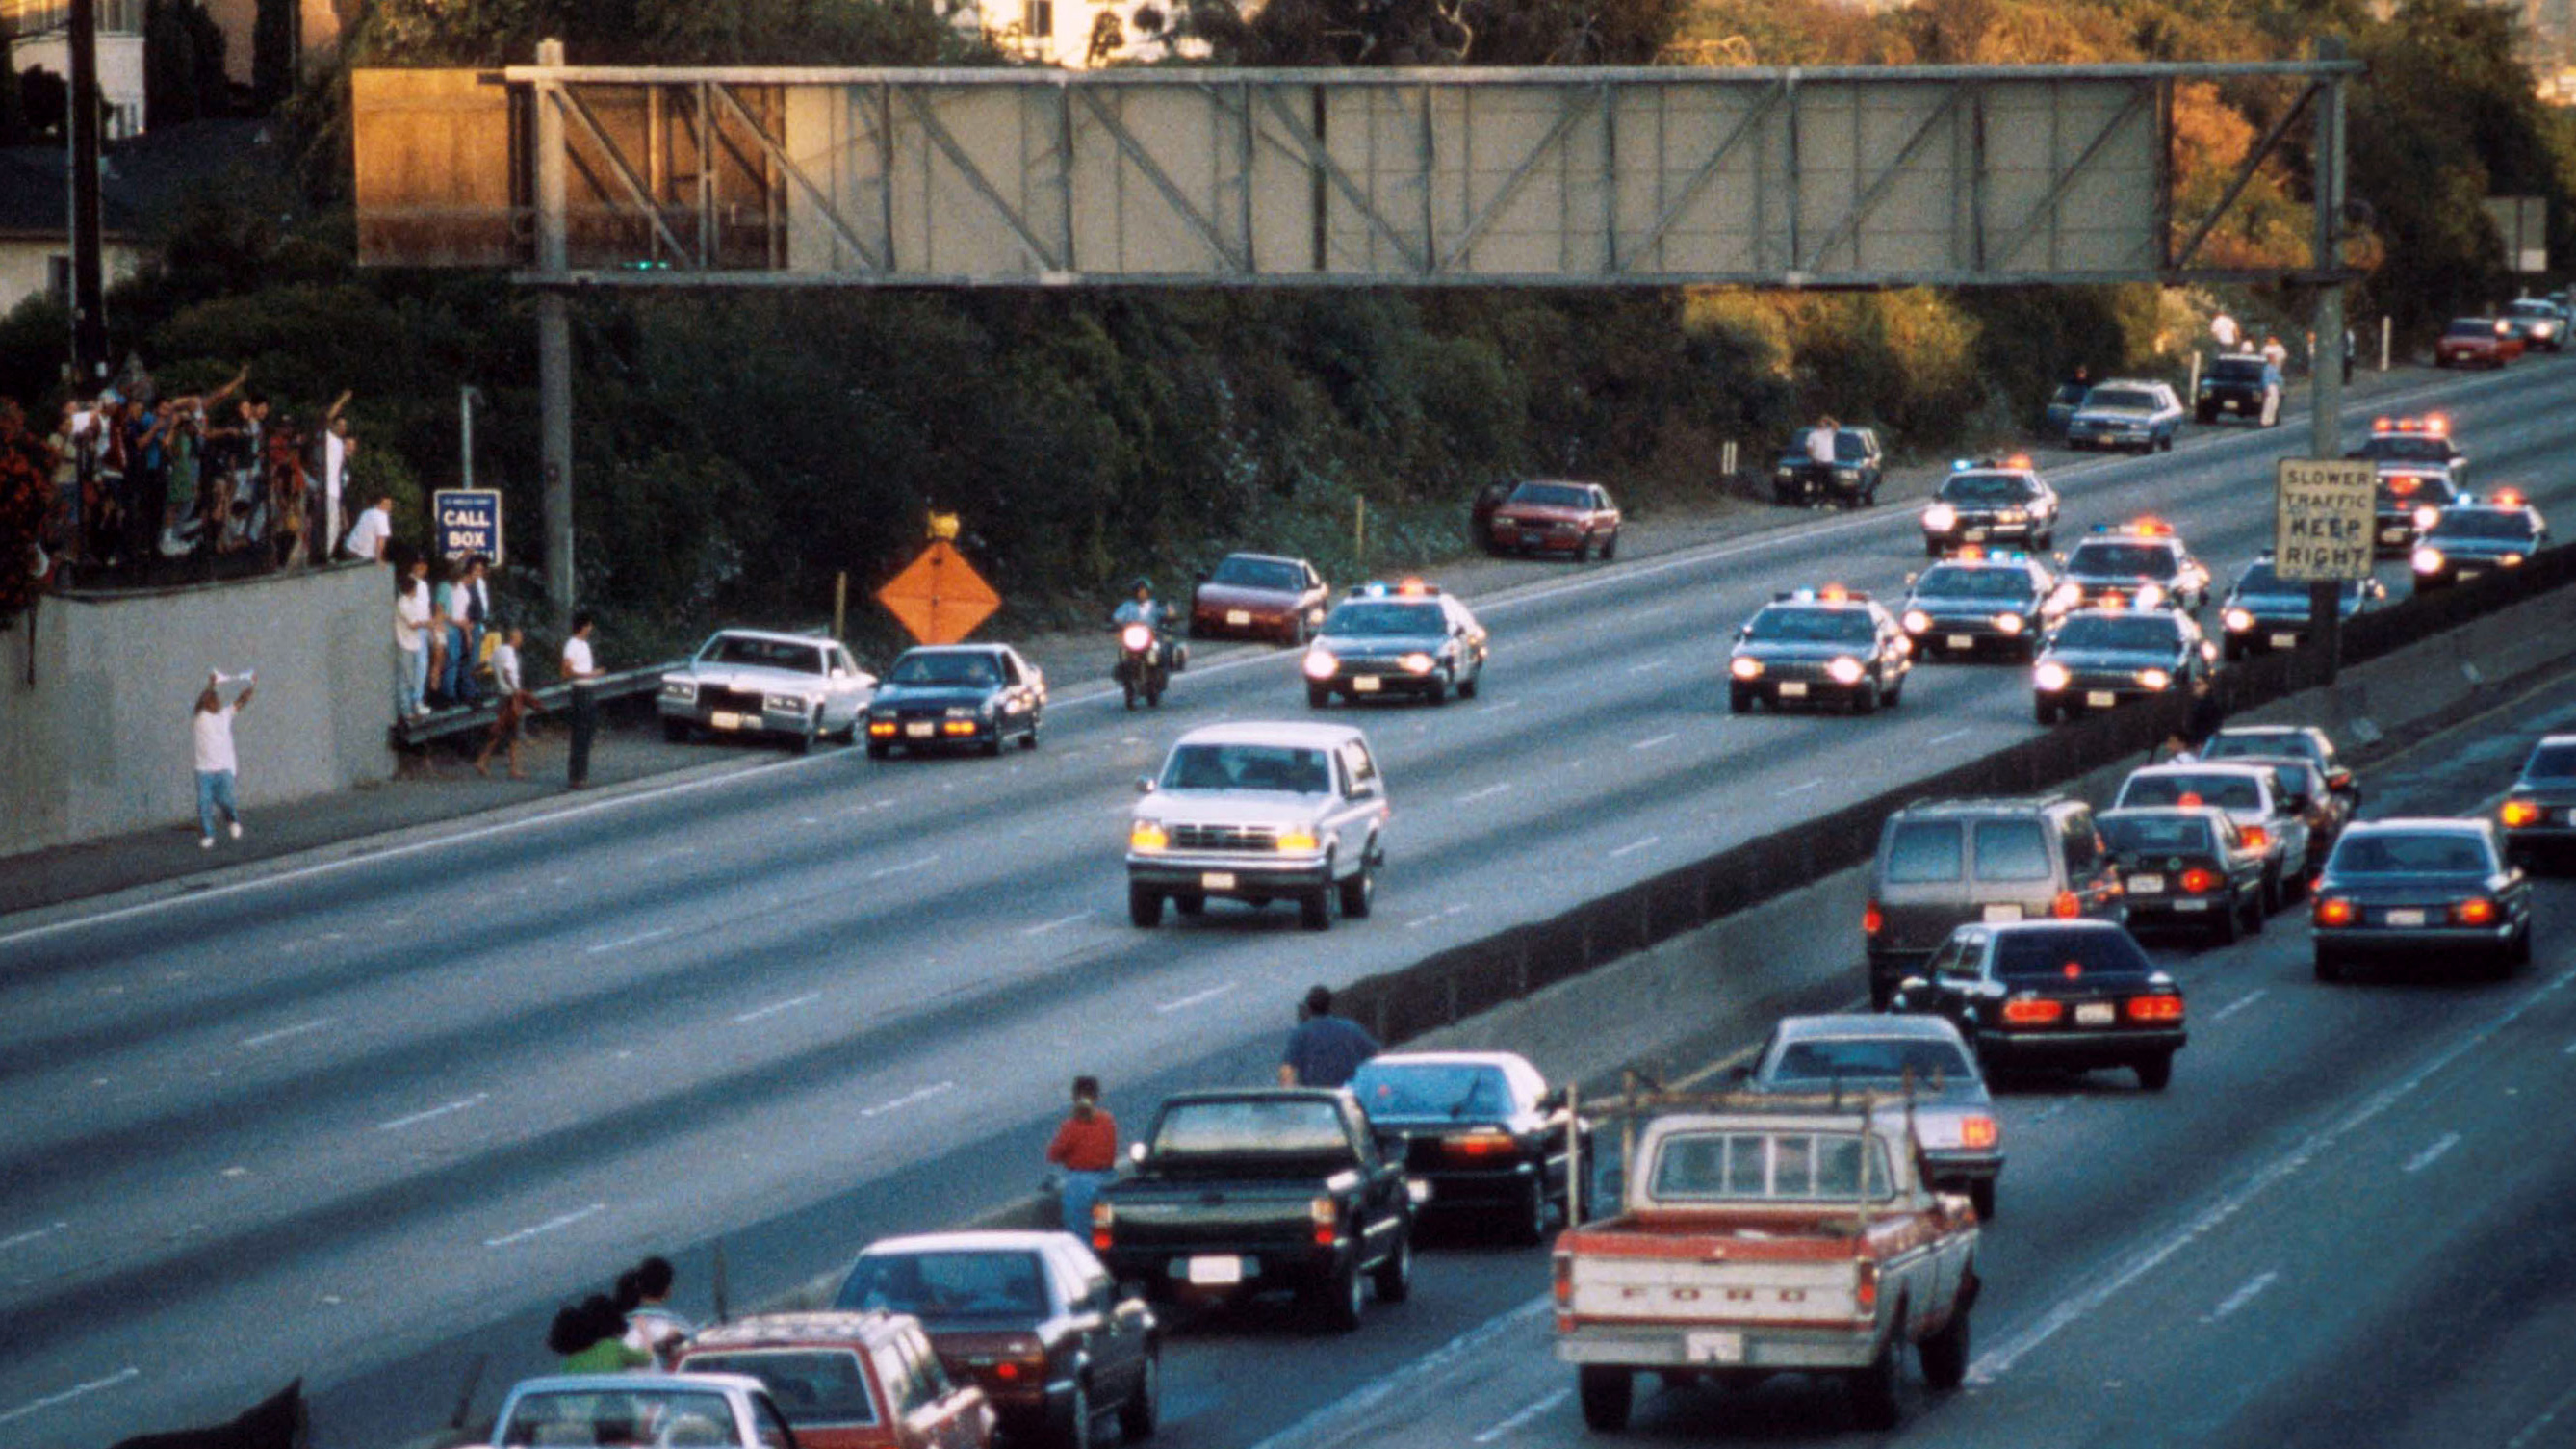 Motorists stop and wave as police cars pursue the Ford Bronco driven by Al Cowlings, carrying fugitive murder suspect O.J. Simpson, on a 90-minute slow-speed car chase June 17, 1994 on the 405 freeway in Los Angeles, California. (Credit: Jean-Marc Giboux/Liaison/Getty Images)